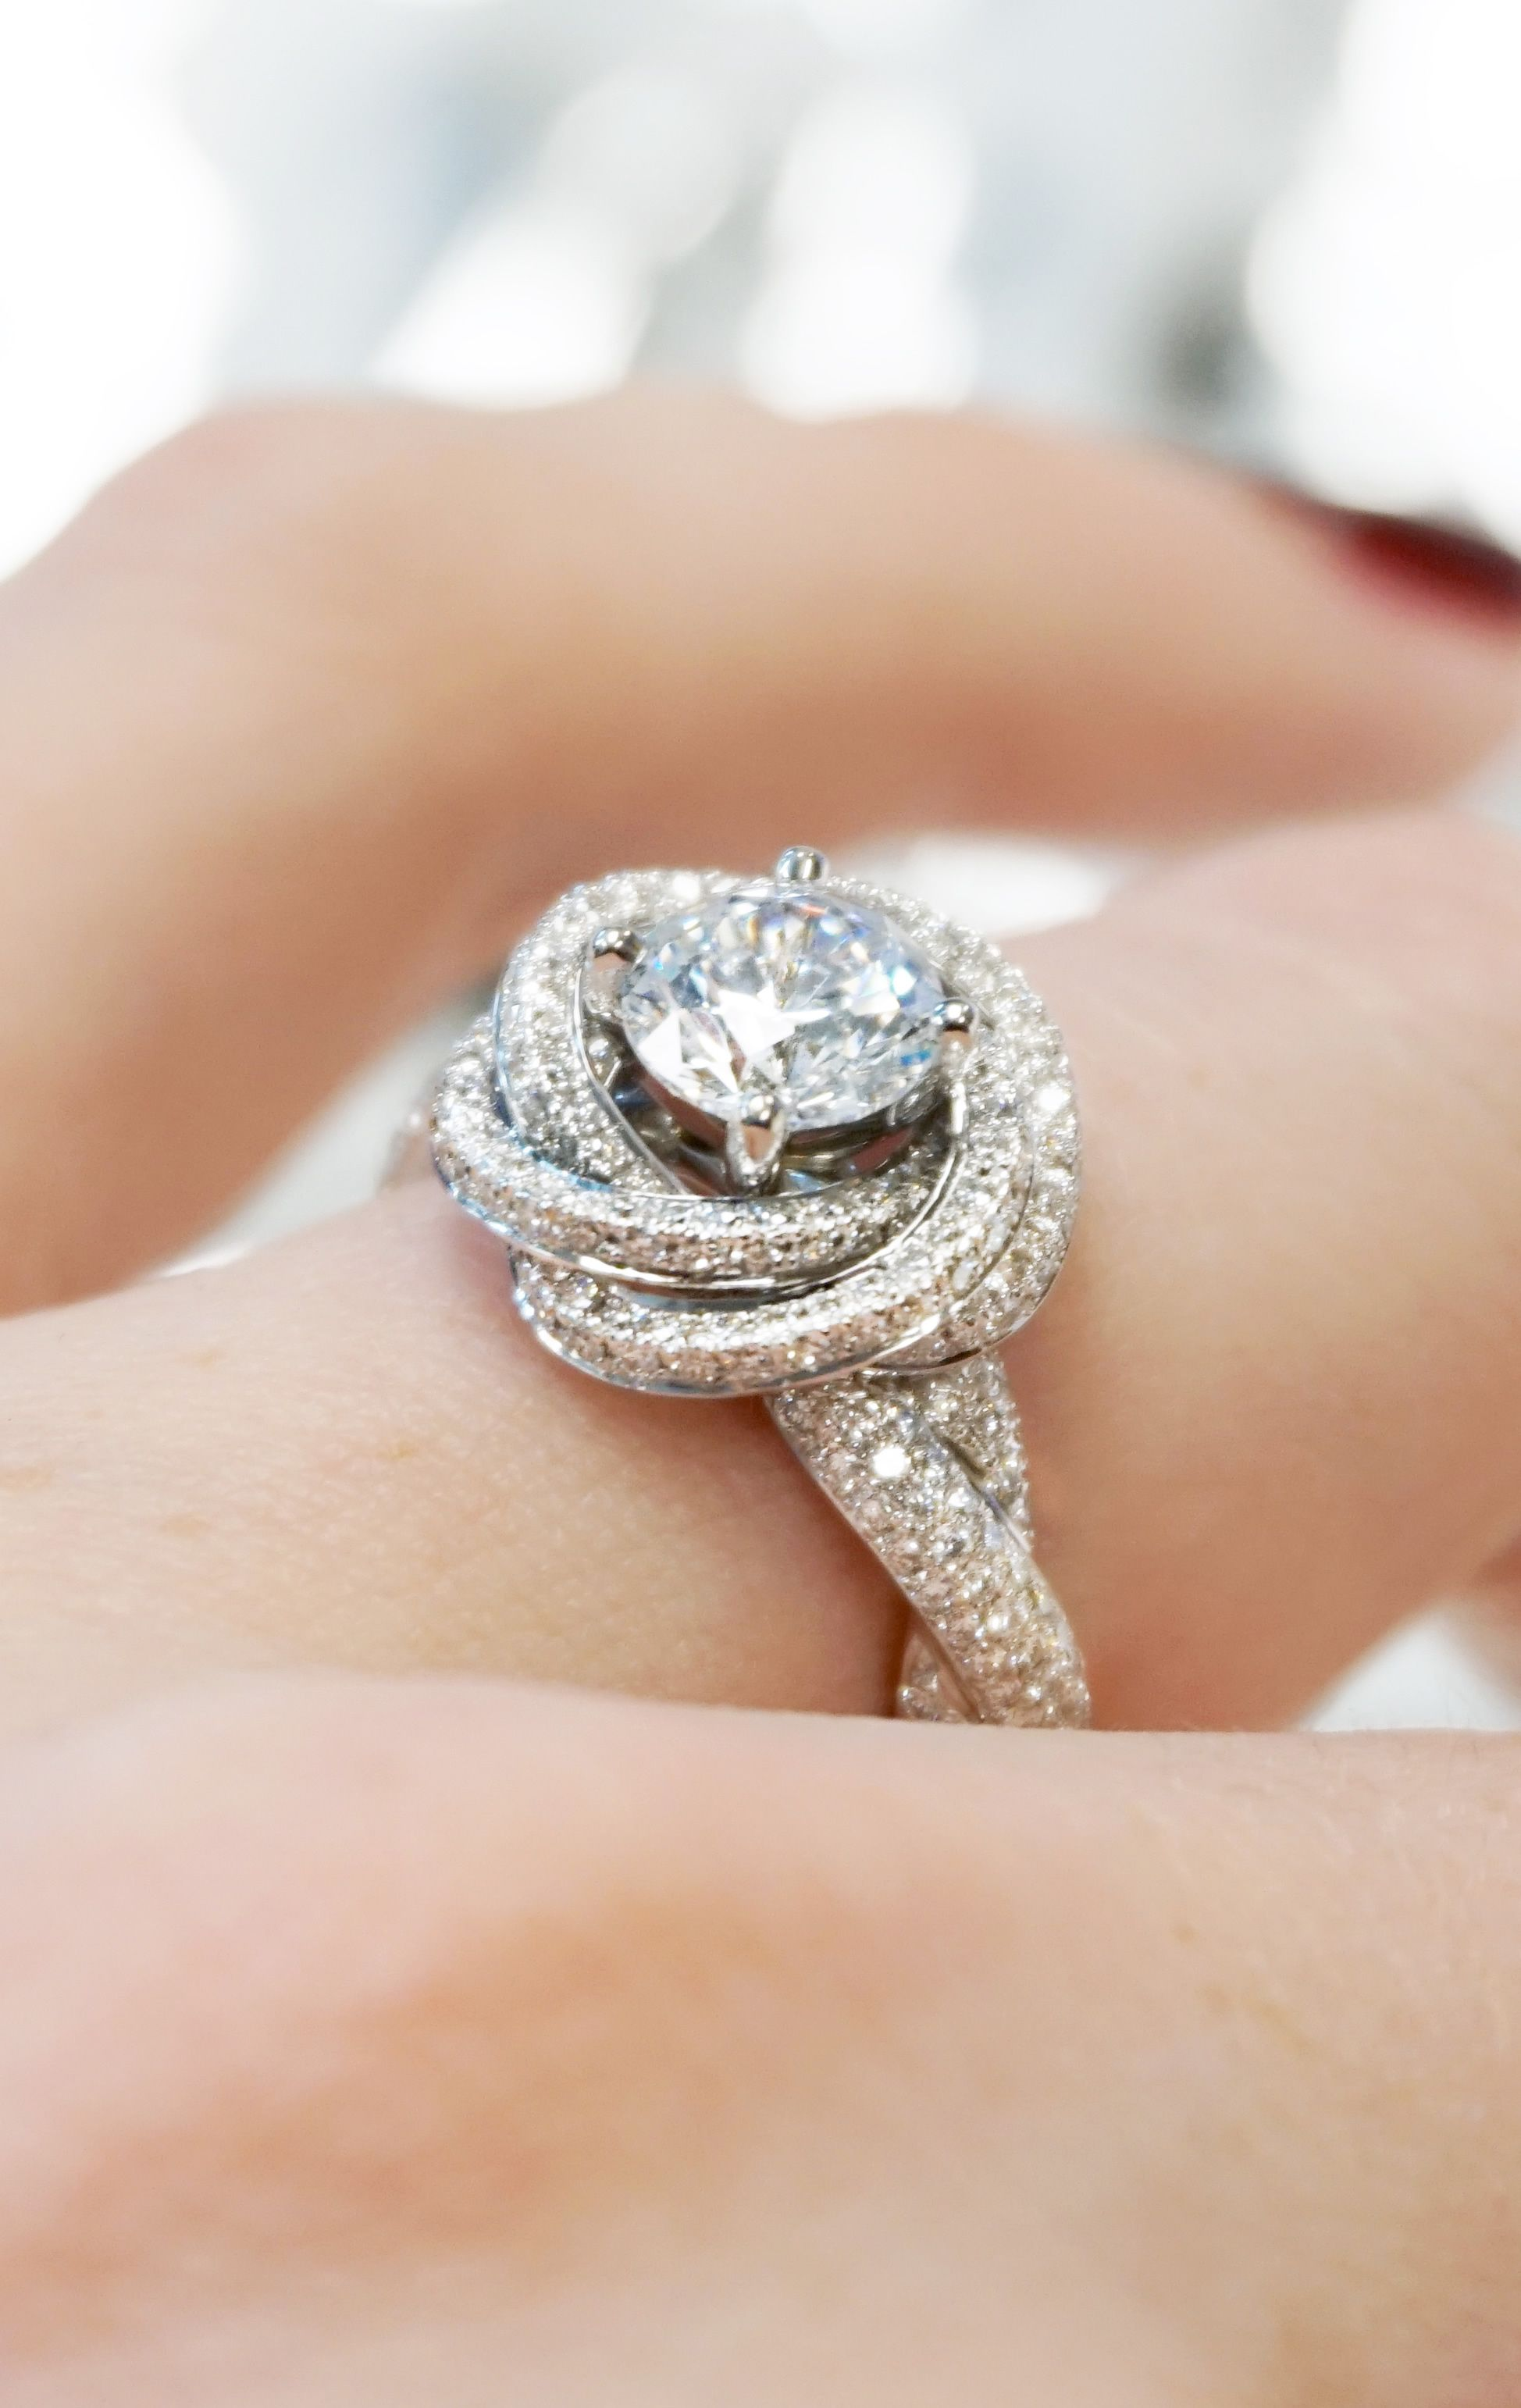 the engagement cool brides unique gallery wedding bride second marriage rings for